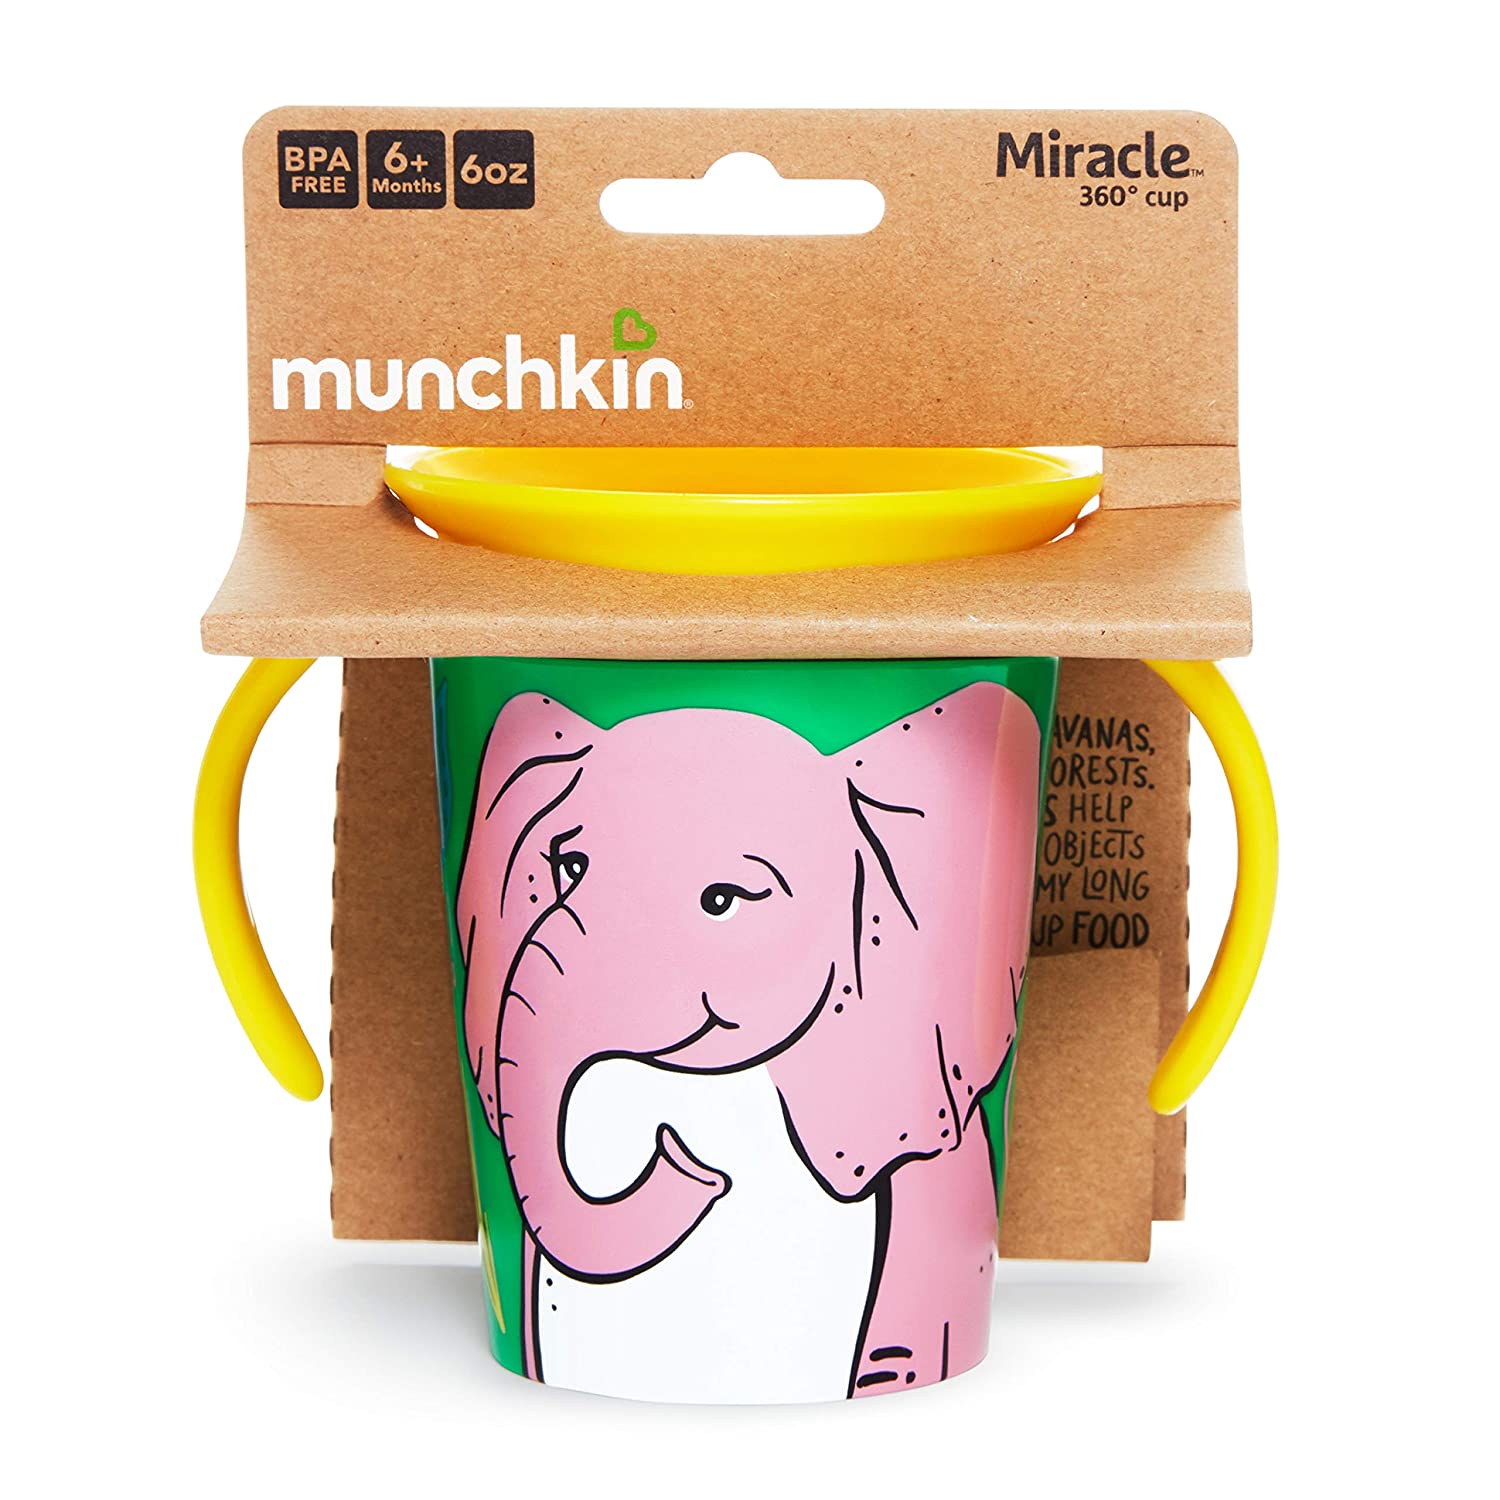 Elephant 6 Oz Munchkin Miracle 360 Wildlove Trainer Cup